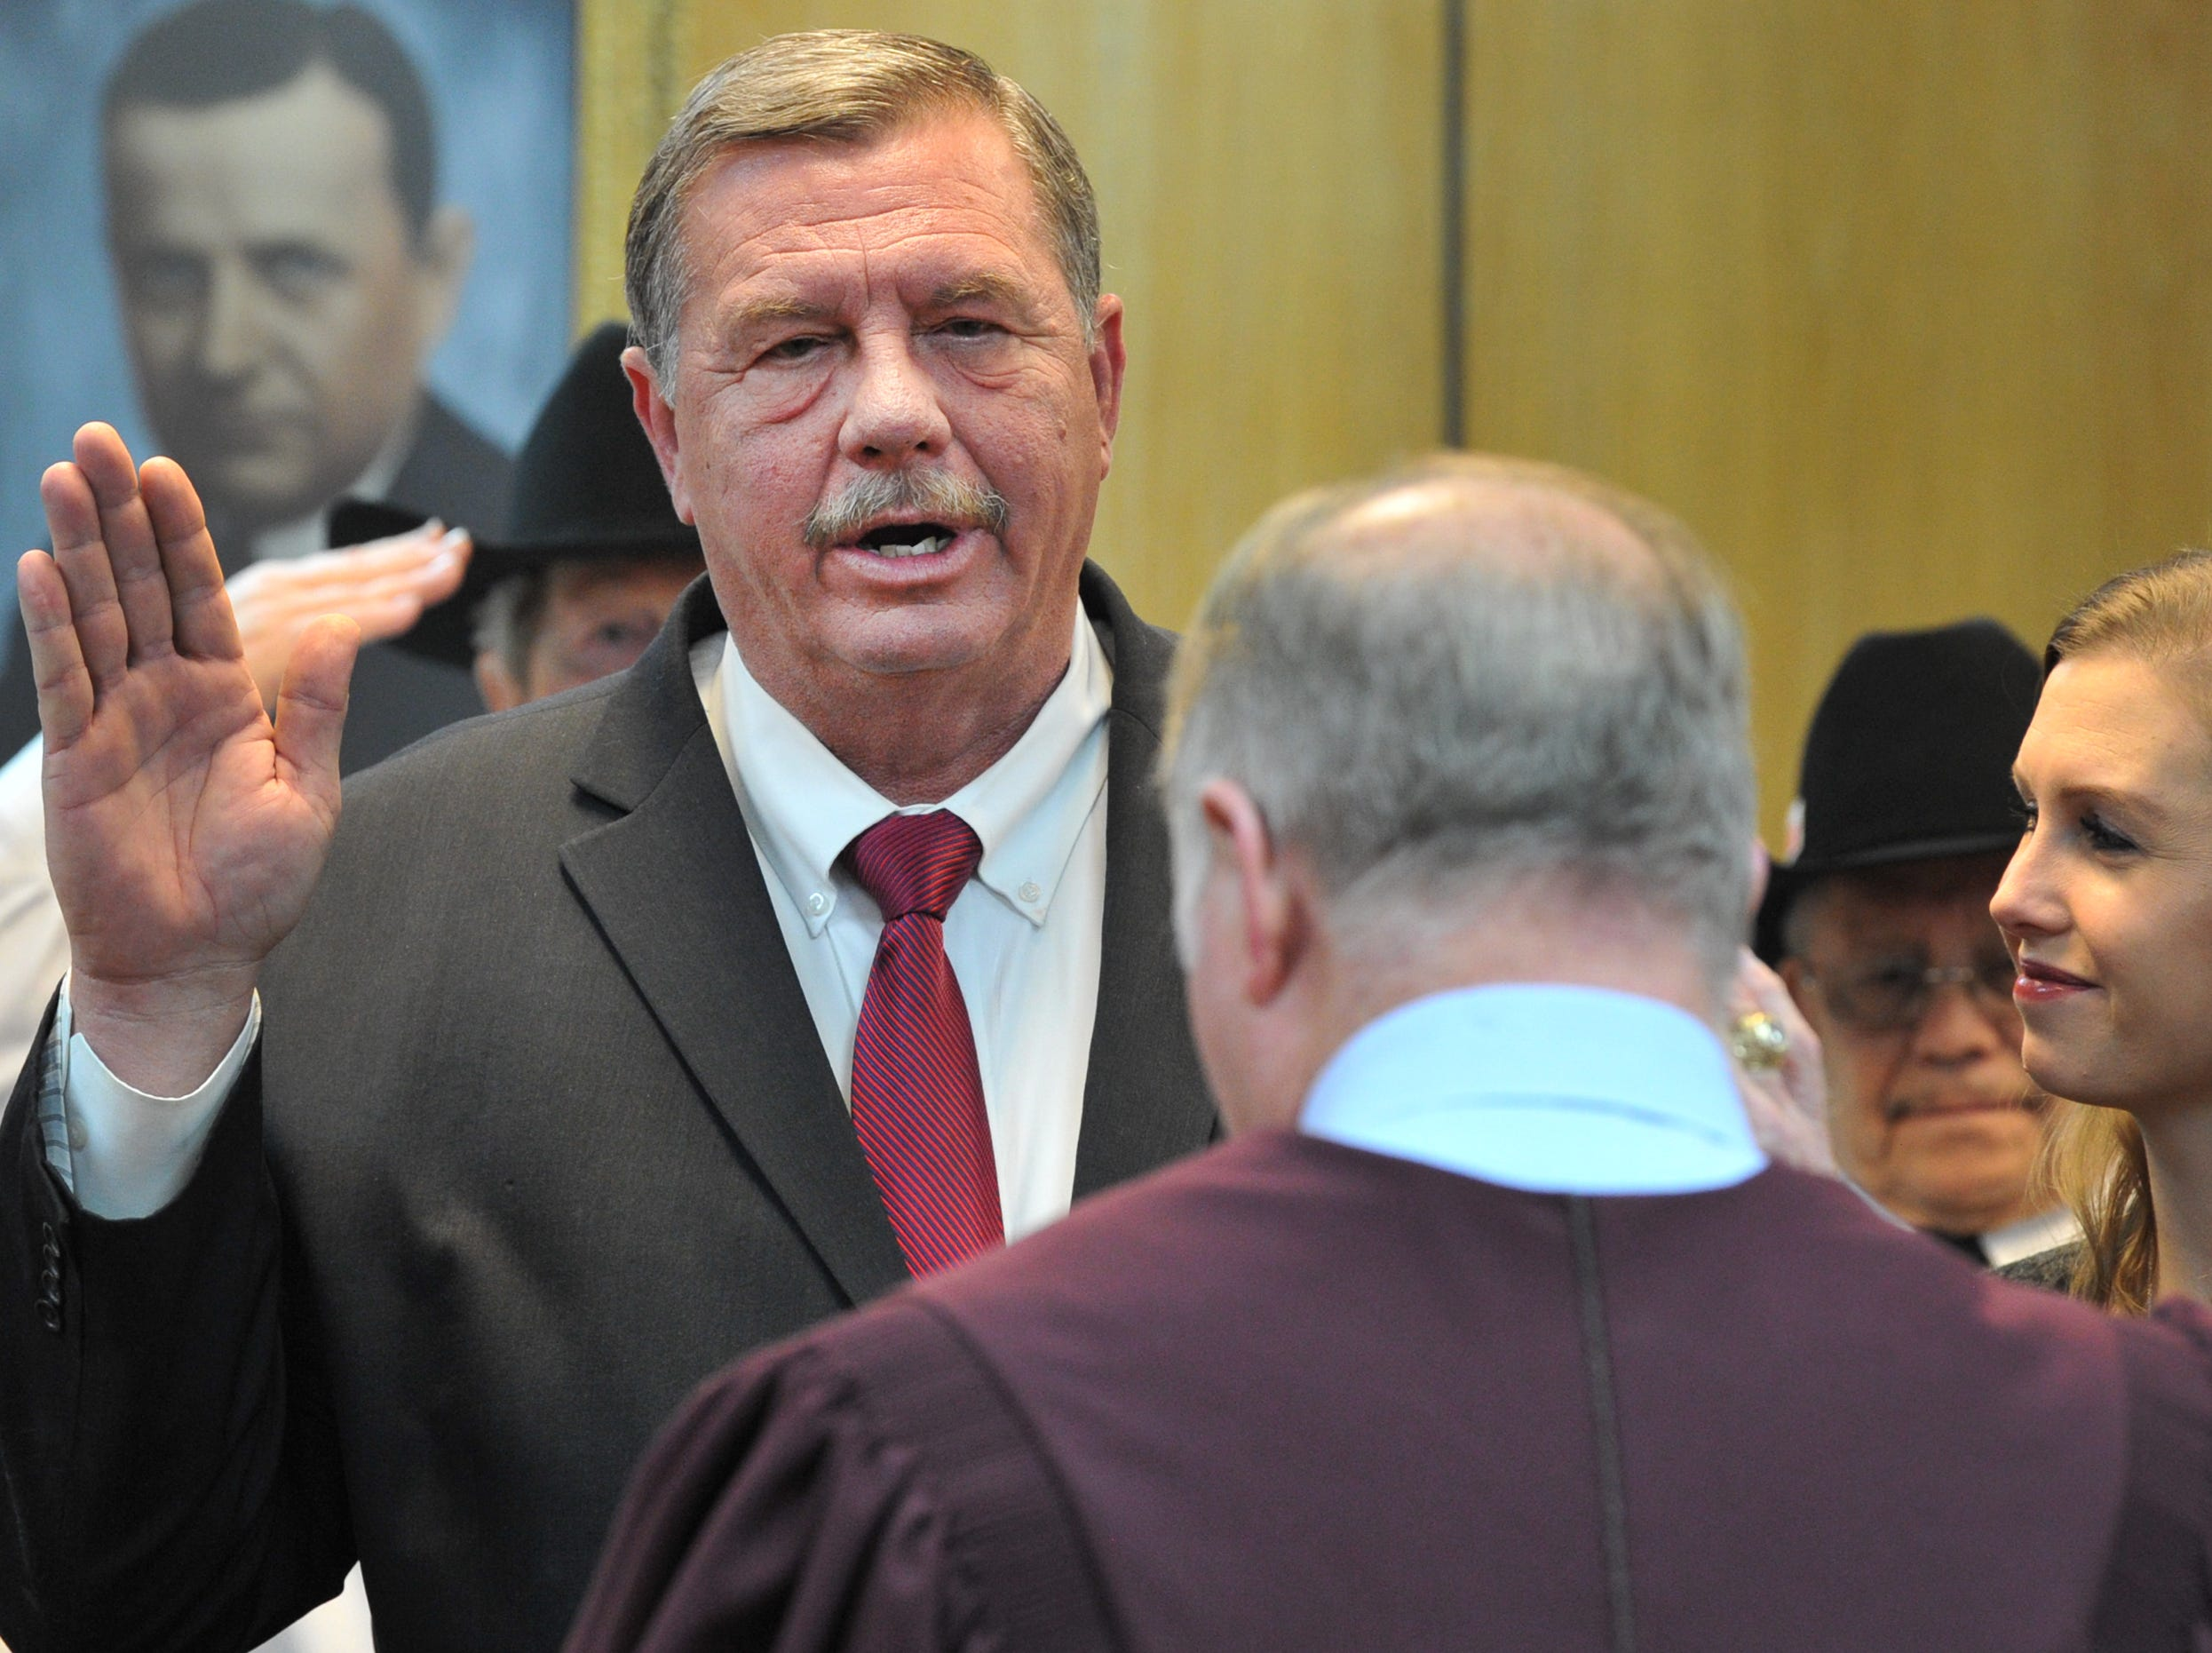 Wichita County Precinct 2 Commissioner, Lee Harvey was sworn in during a ceremony held in the 30th district courtroom, Tuesday morning.